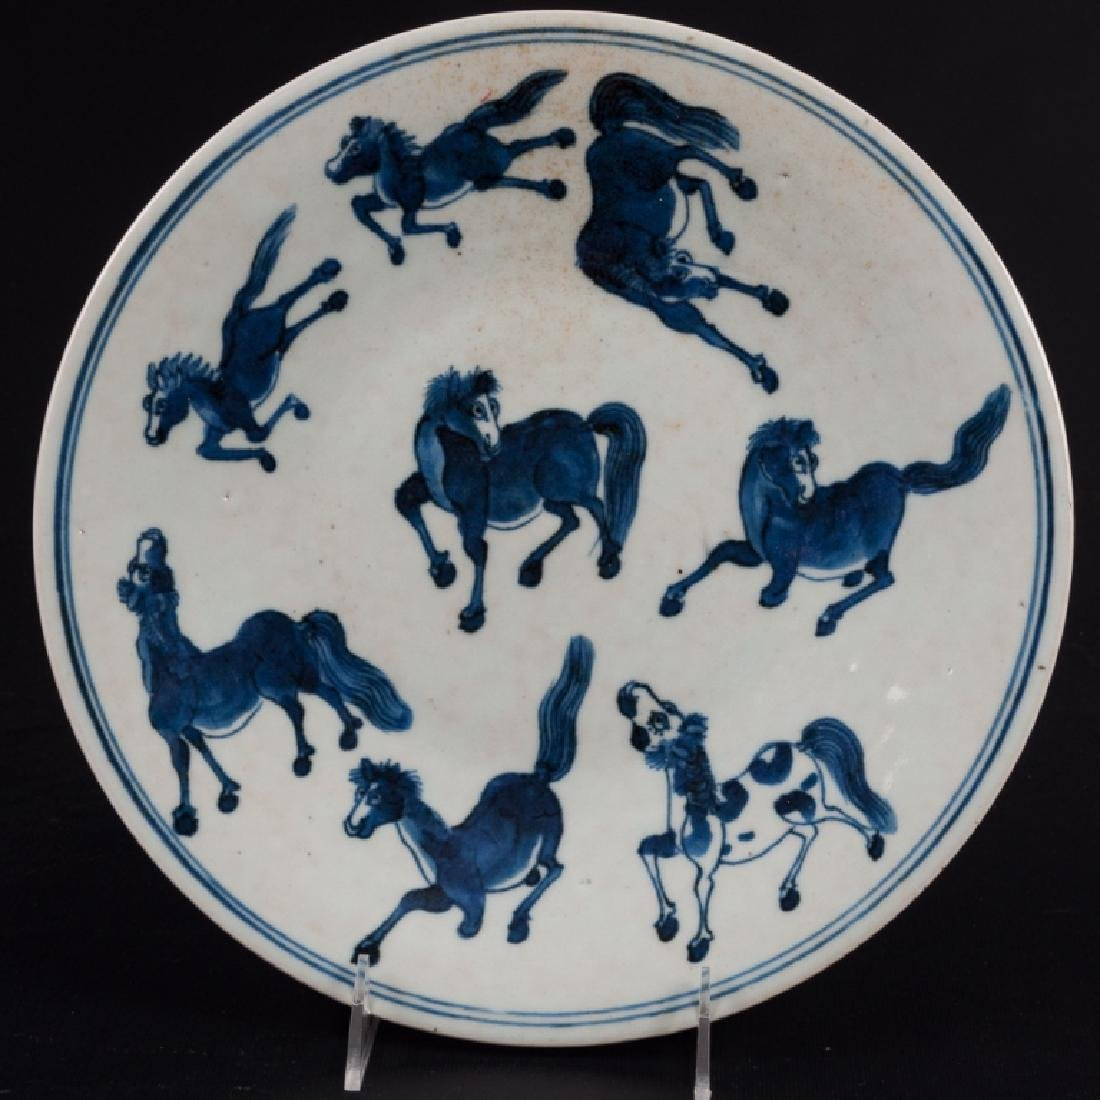 Chinese Porcelain Plate, L 19th/E 20th C